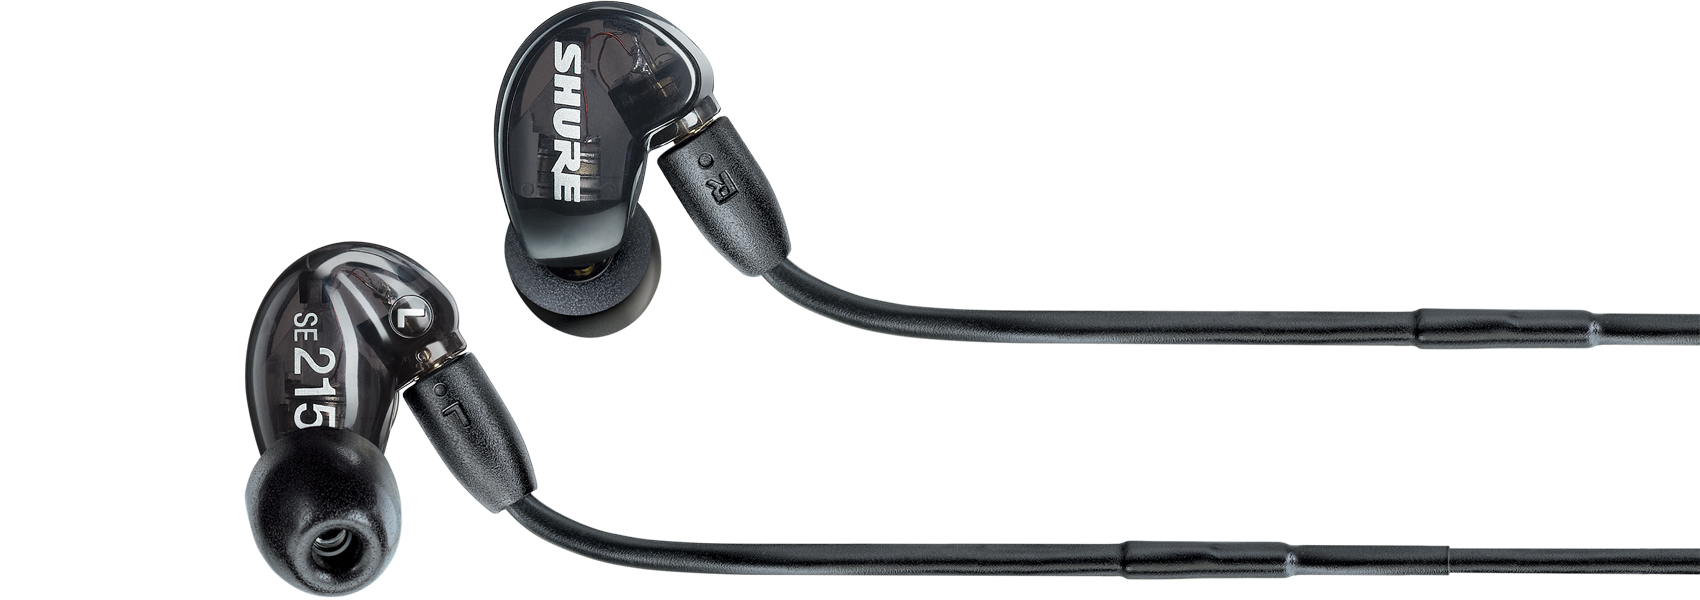 Illustration Shure SE215 Sound Isolating Earphones